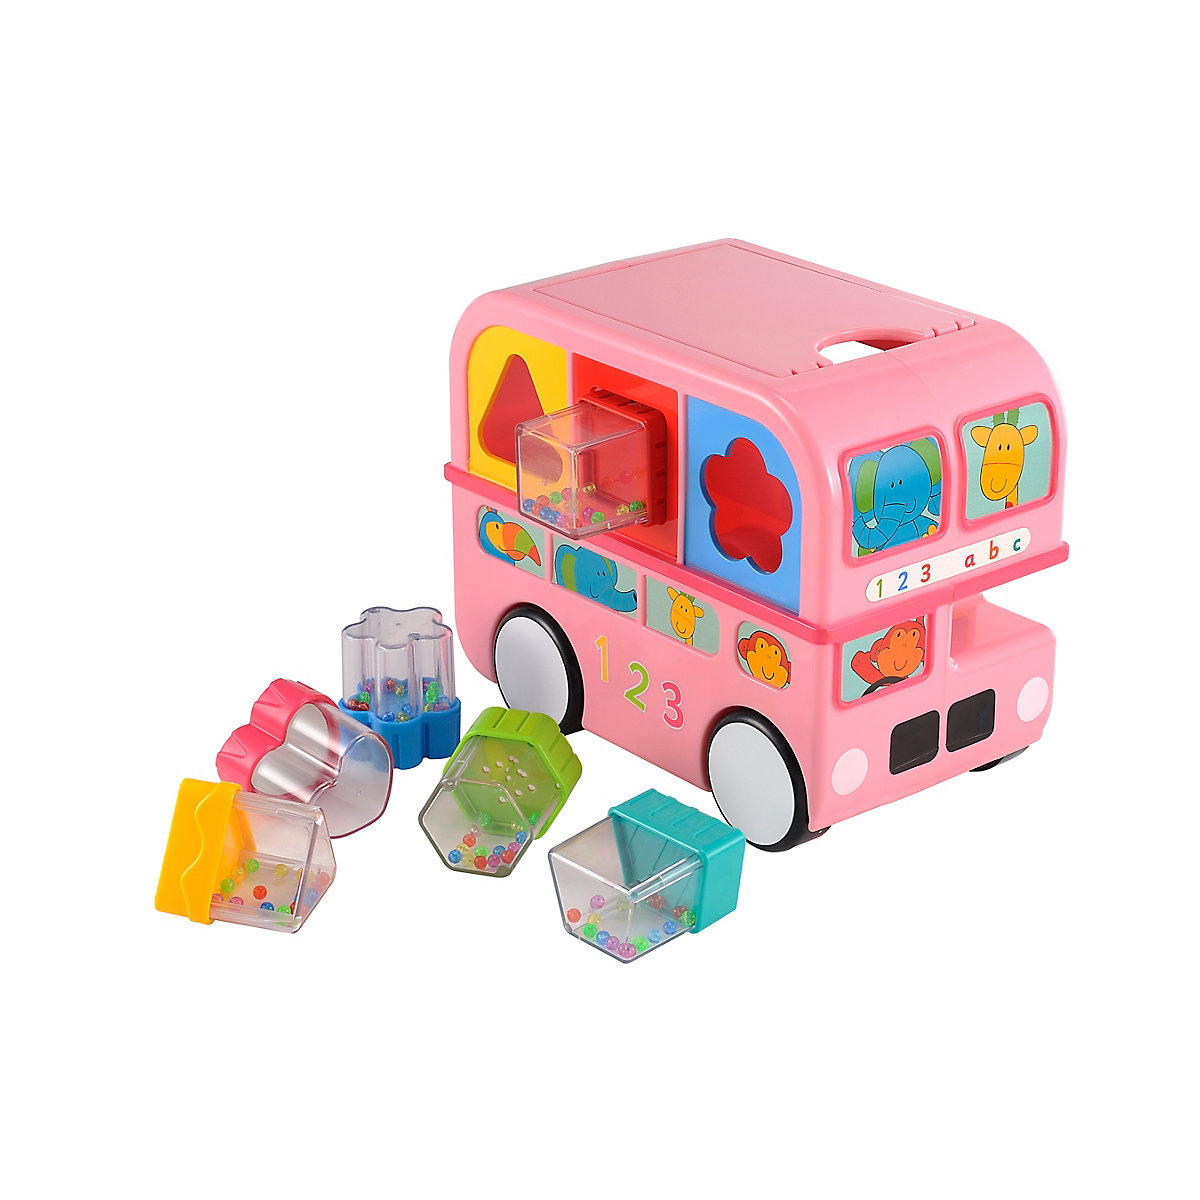 New ELC Boys and Girls Shape Sorting Bus - Pink Toy From 6 months